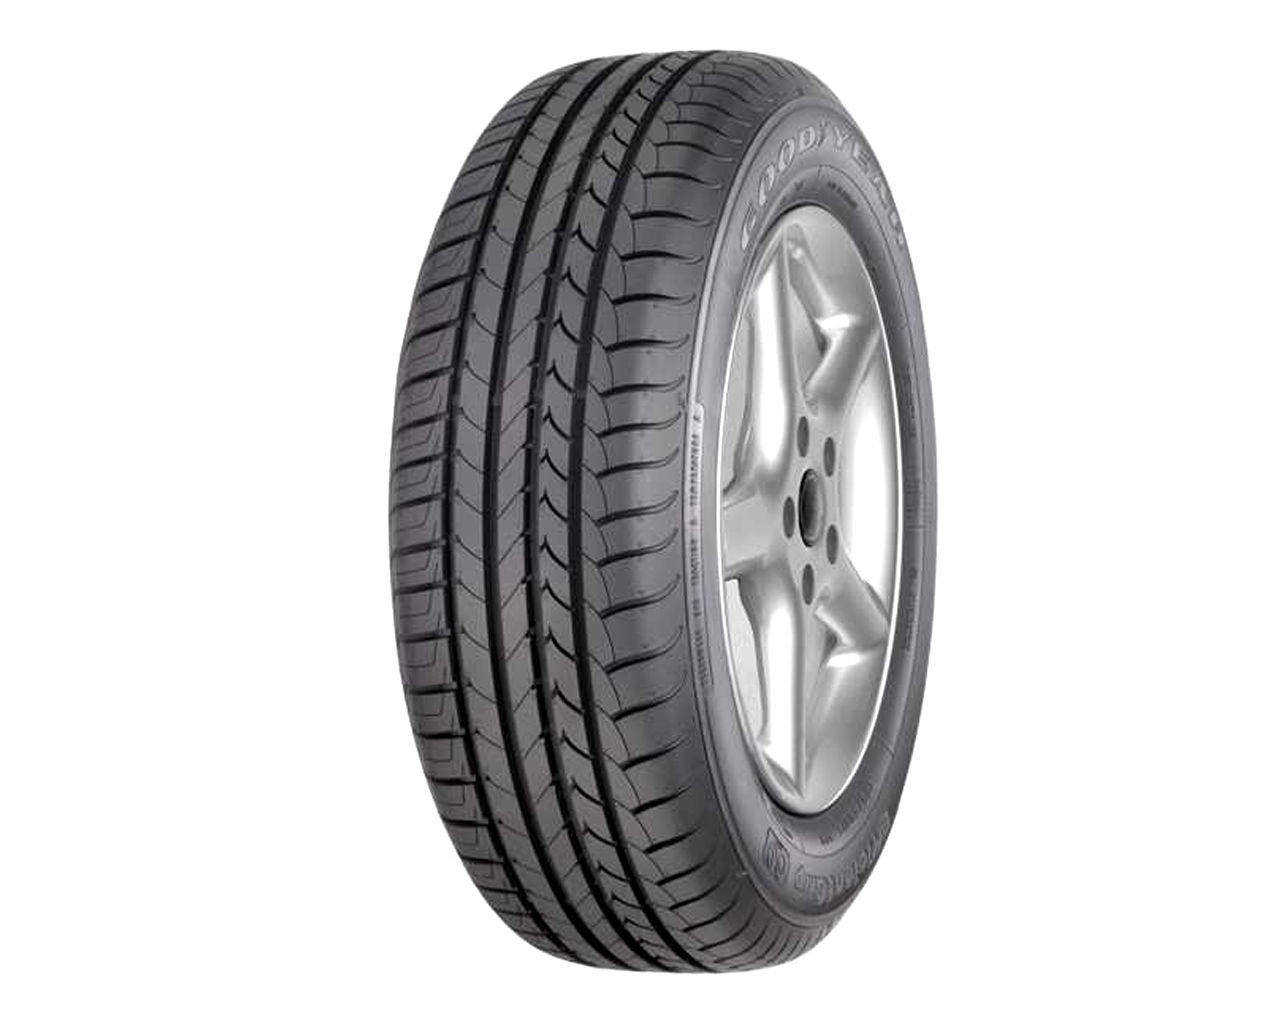 Goodyear EFFICIENTGRIP ROF 245/45 R19 EFFICIENTGRIP 102Y XL ROF MOE FP